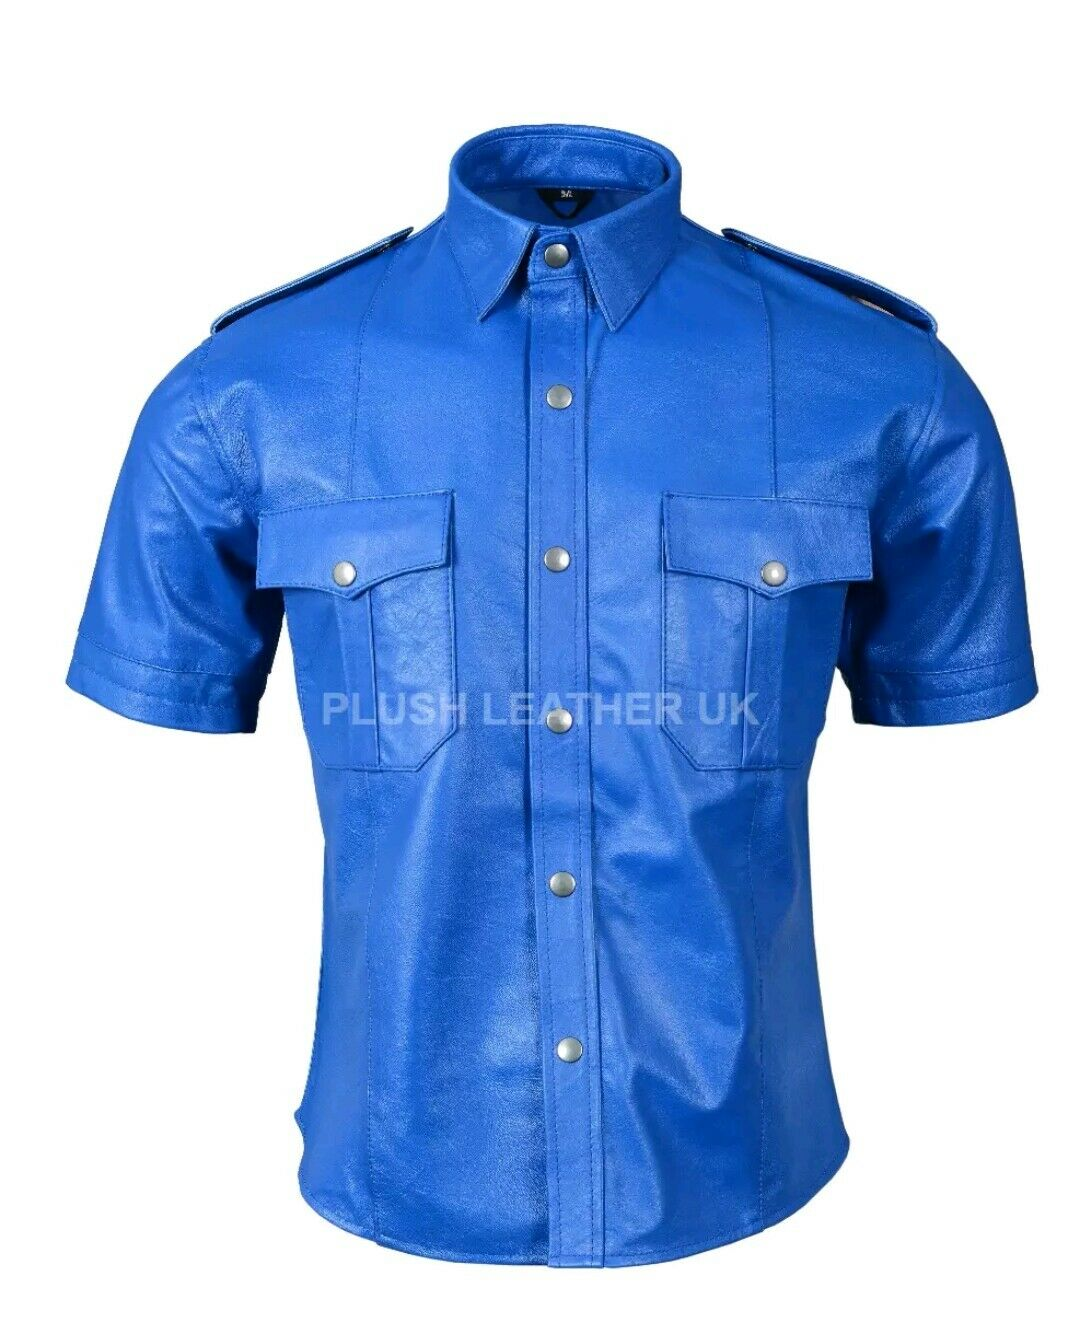 Mens Very Hot Real Sheep Leather in Full bluee  Police Uniform Shirt bluef Gay